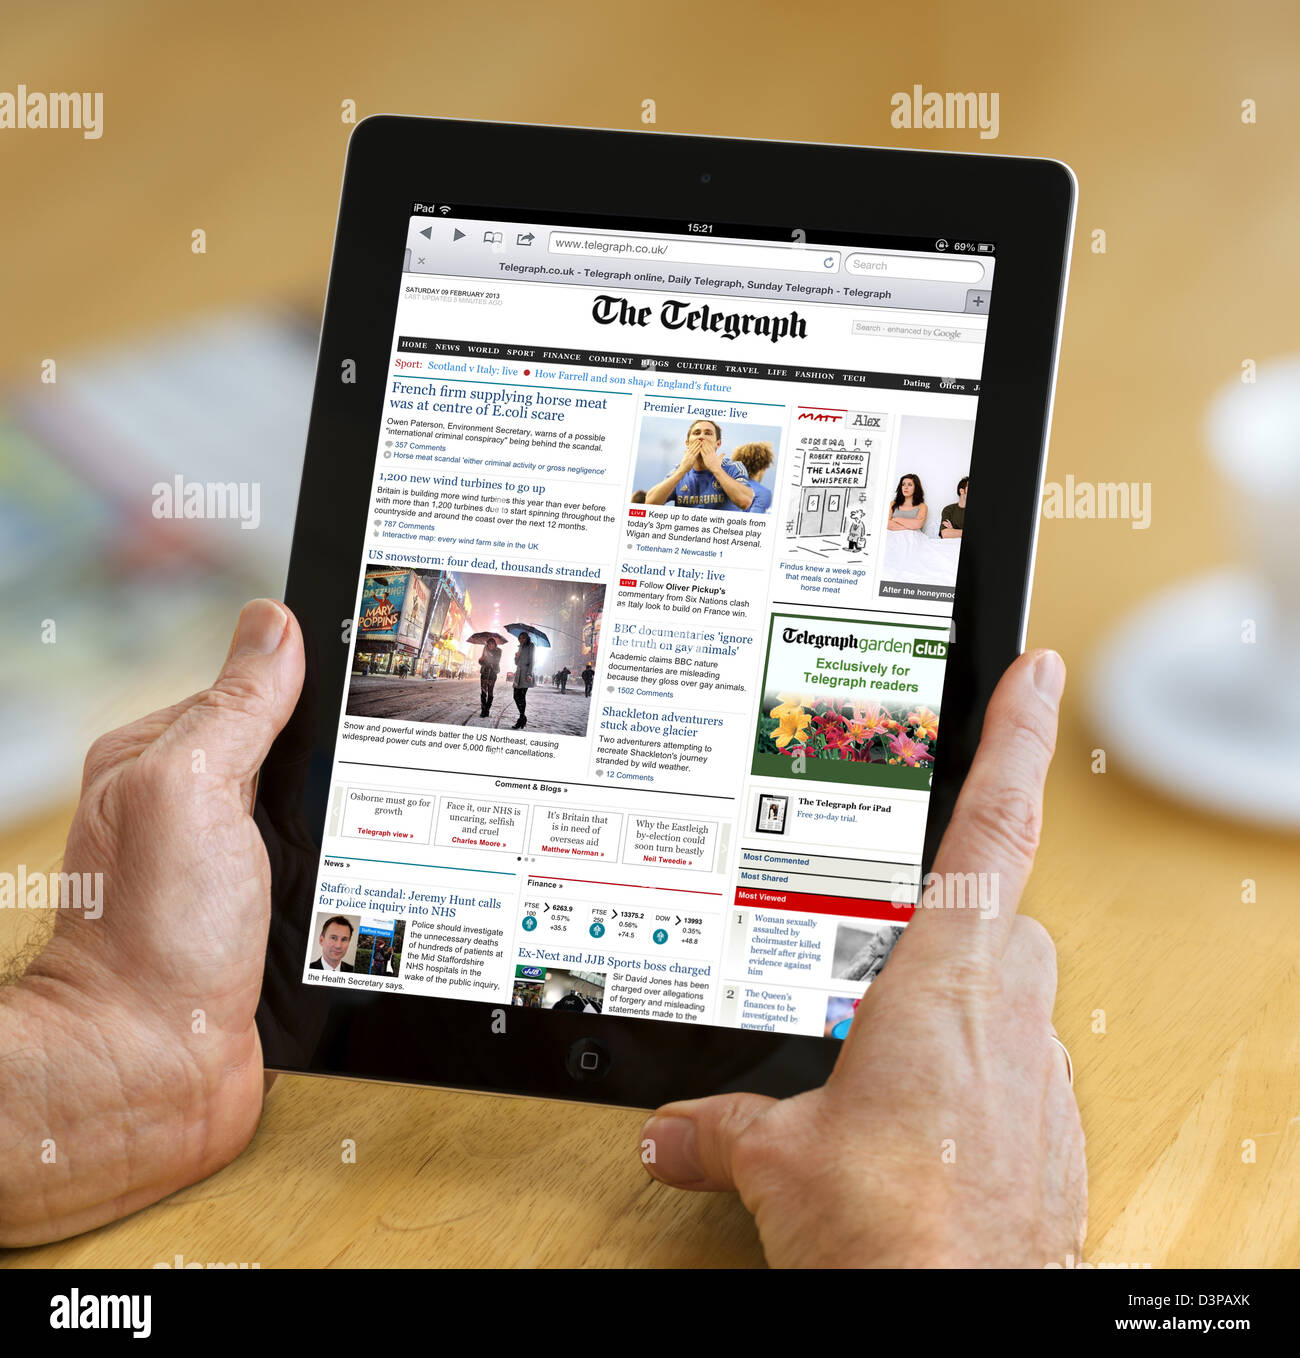 Reading the internet edition of the Telegraph Online newspaper on a 4th Generation iPad, UK - Stock Image